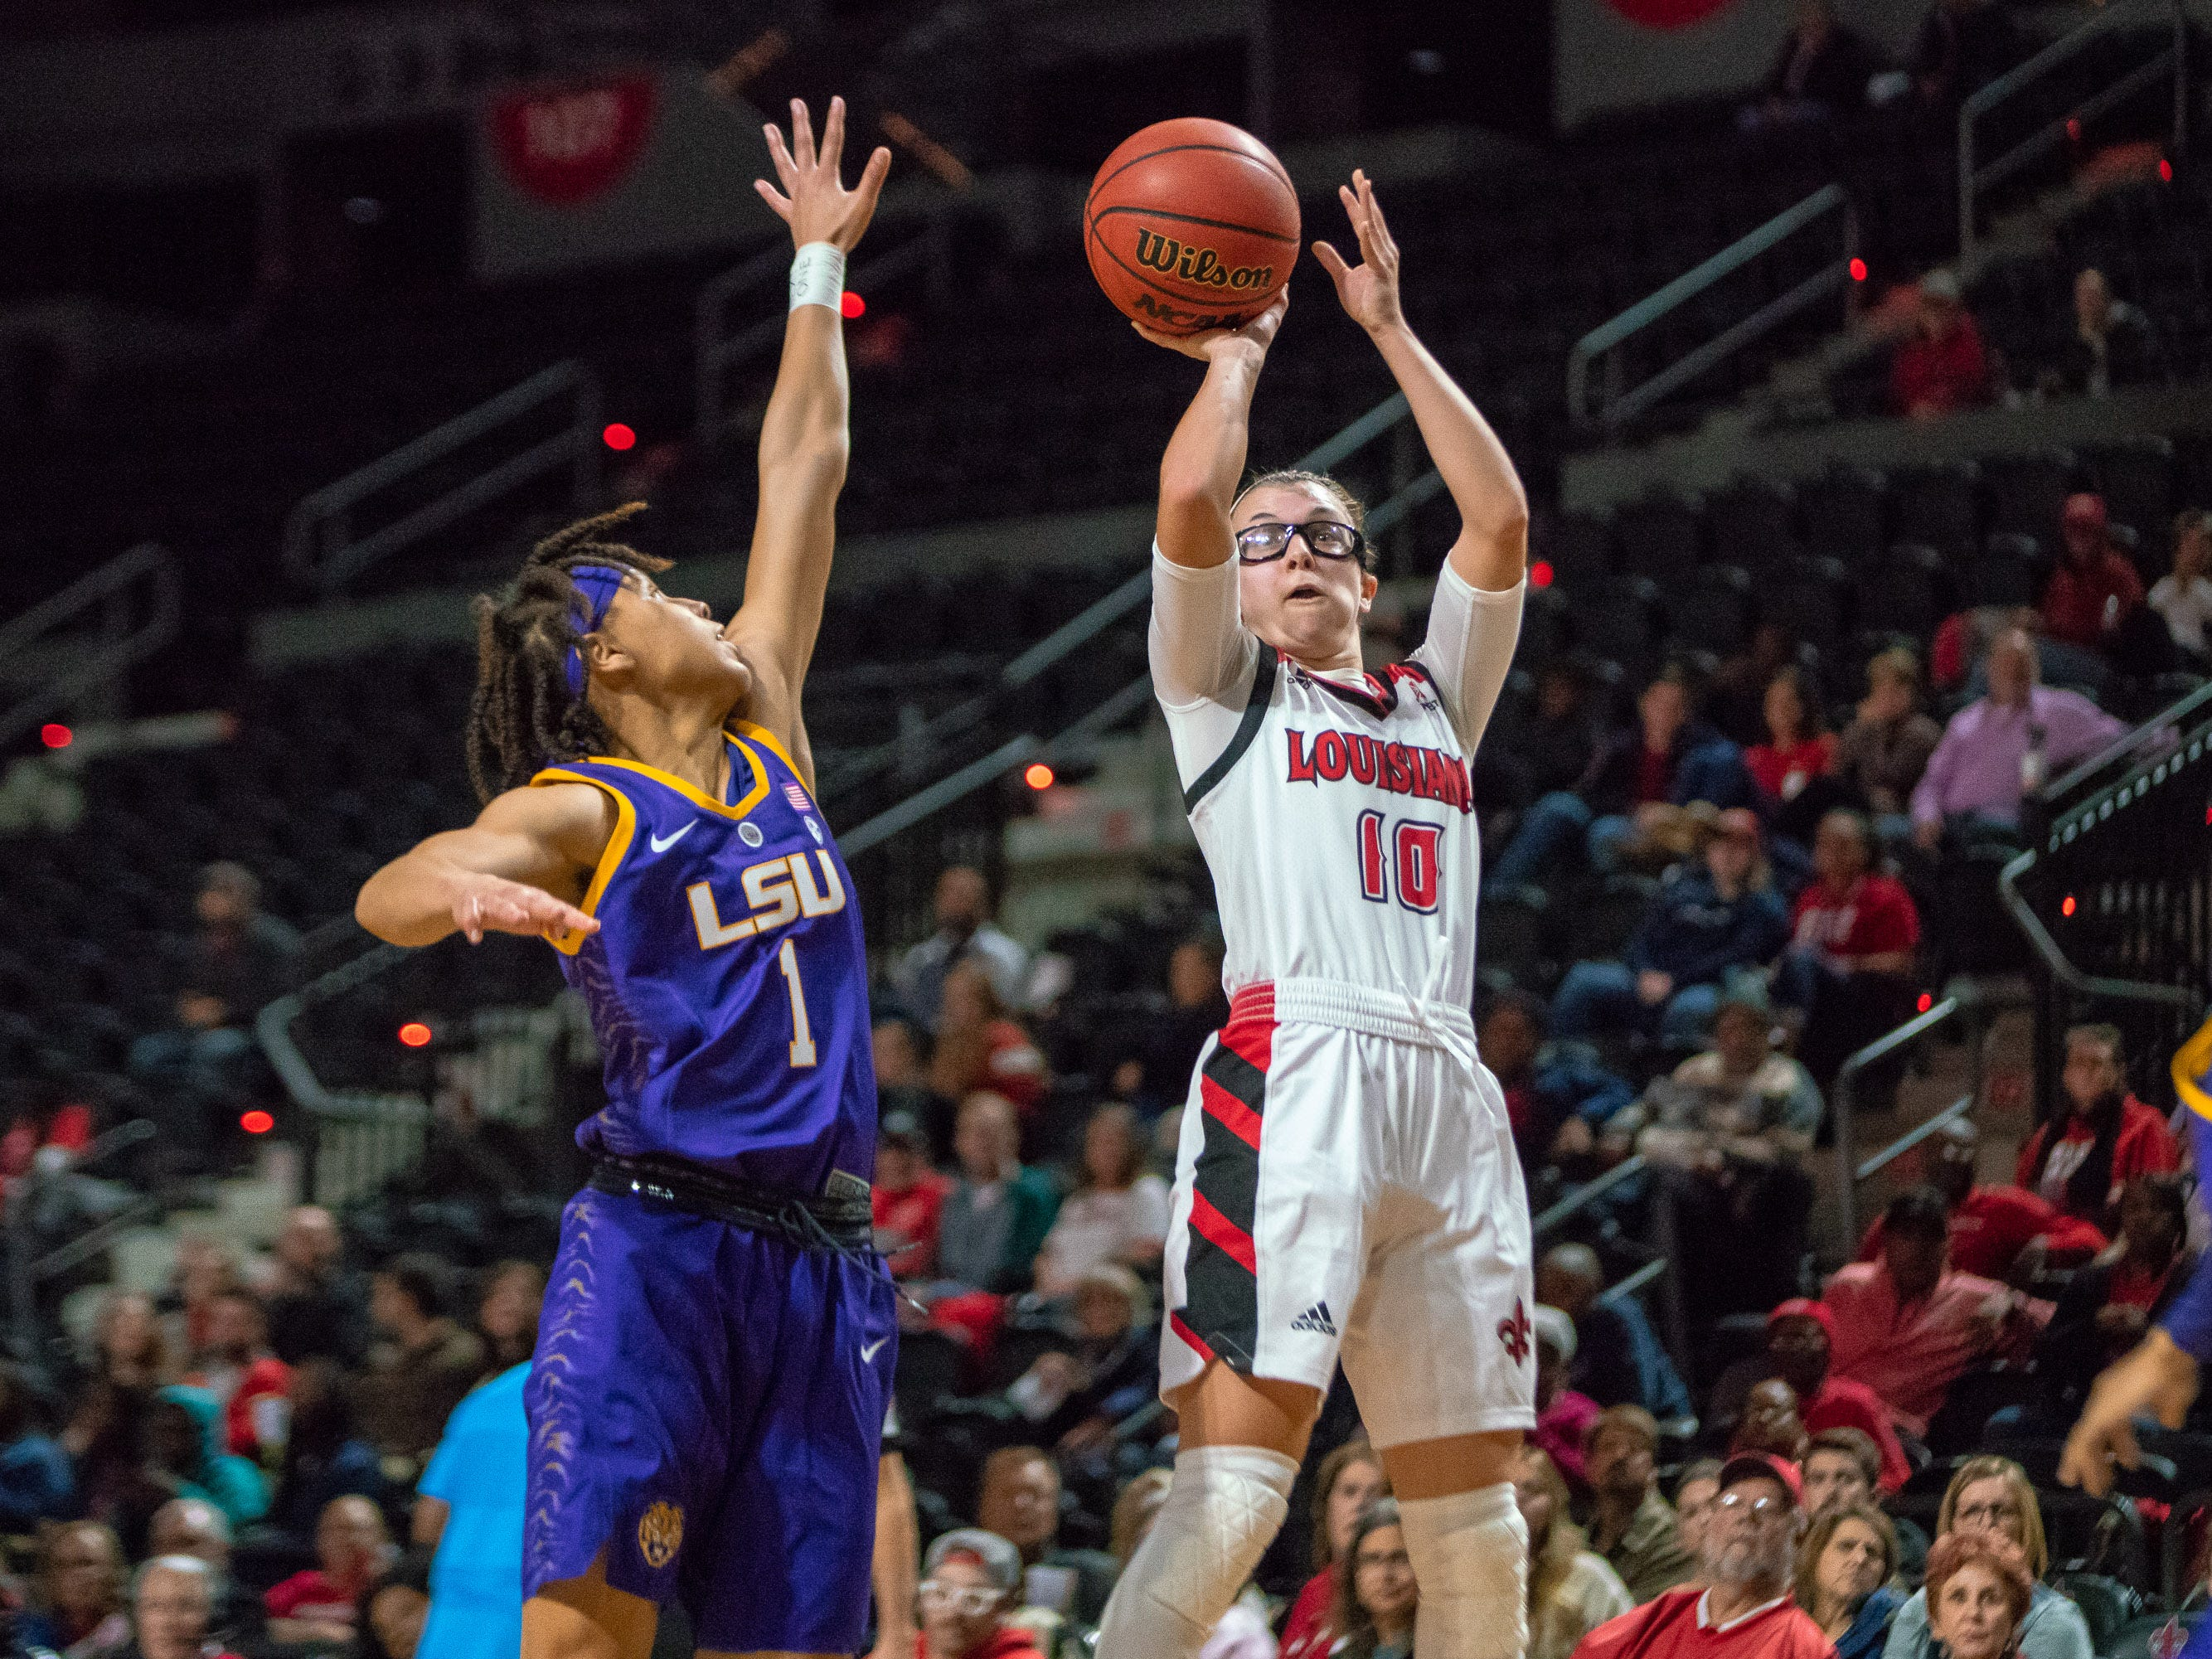 UL's Andrea Cournoyer shoots to score as the Ragin' Cajuns play against LSU Tigers at the Cajundome on Dec. 20, 2018.